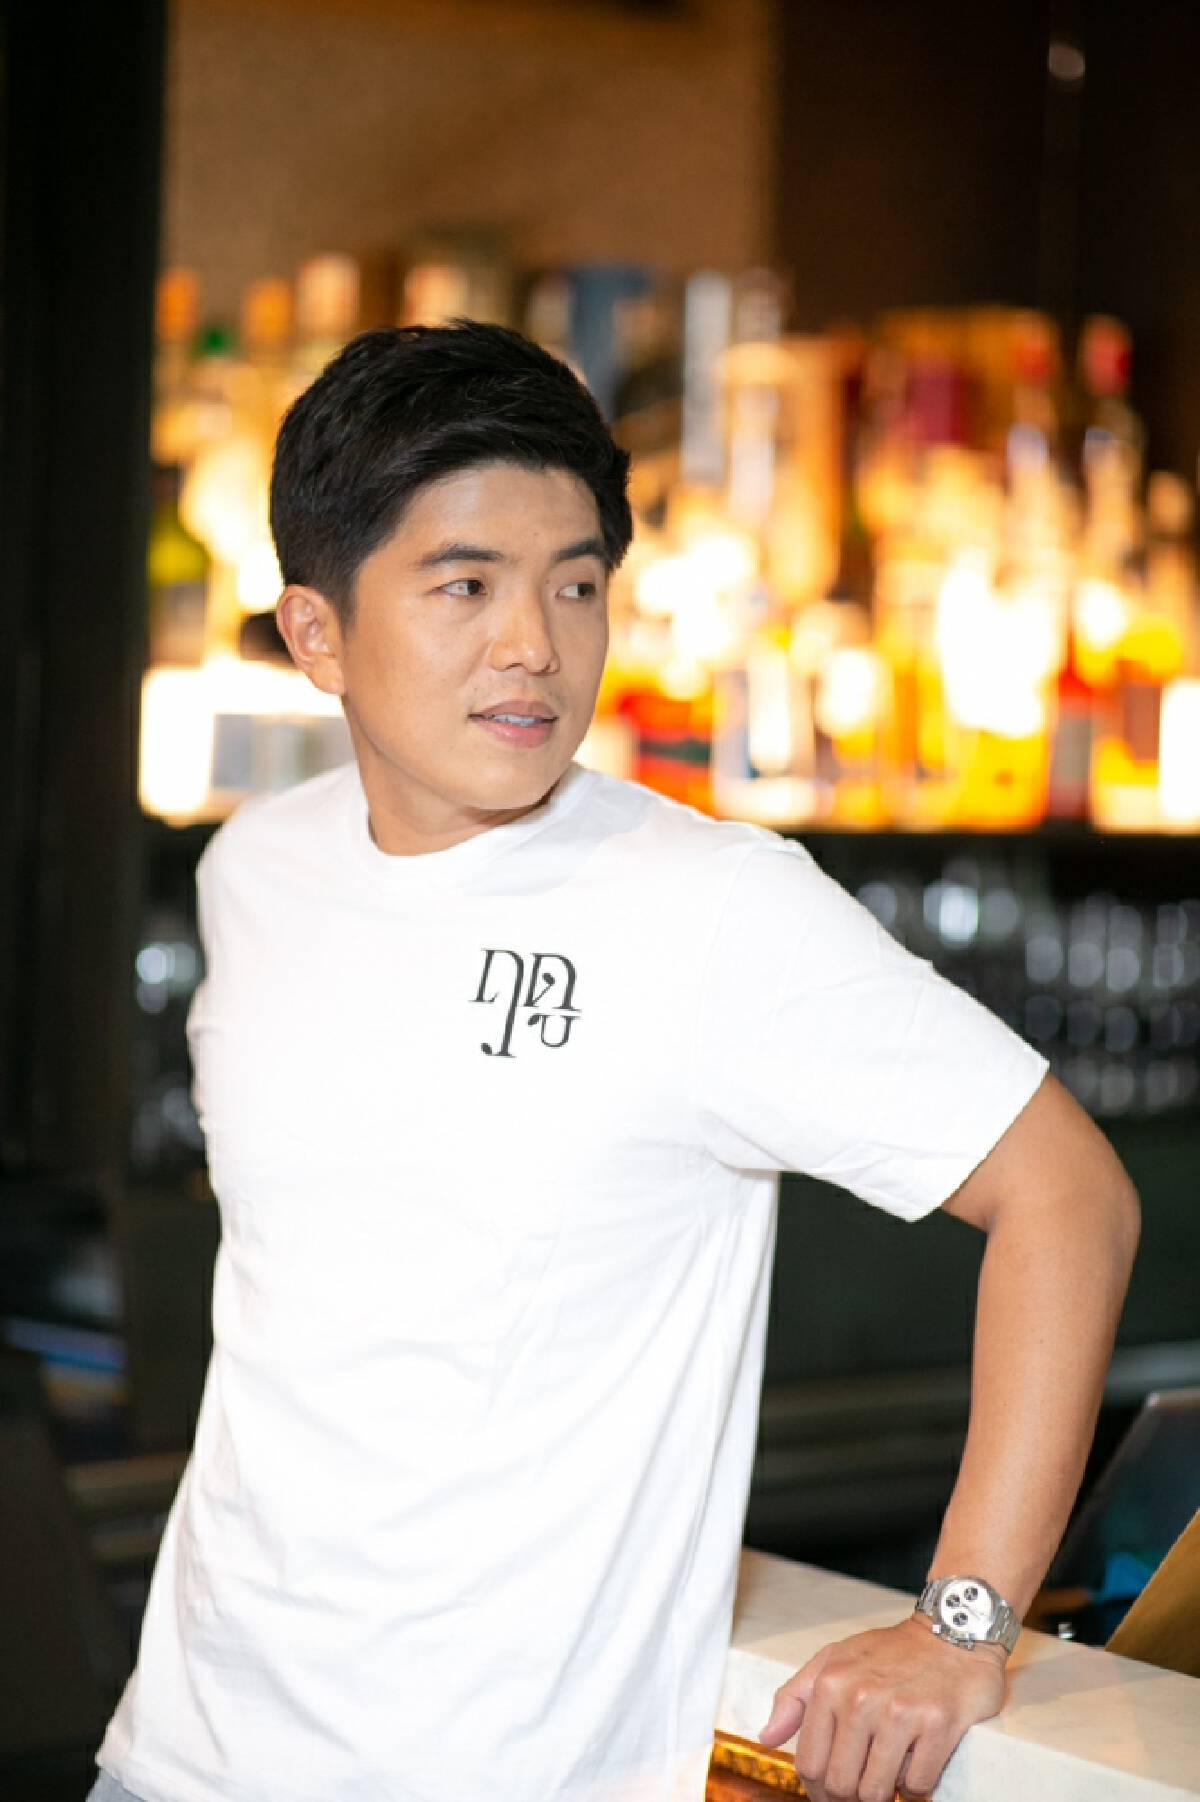 'Chef Ton Thitid Tassanakajohn' of LeDu restaurant, the first Thai chef who won 4th place award from Asia's 50 Best Restaurants 2021.